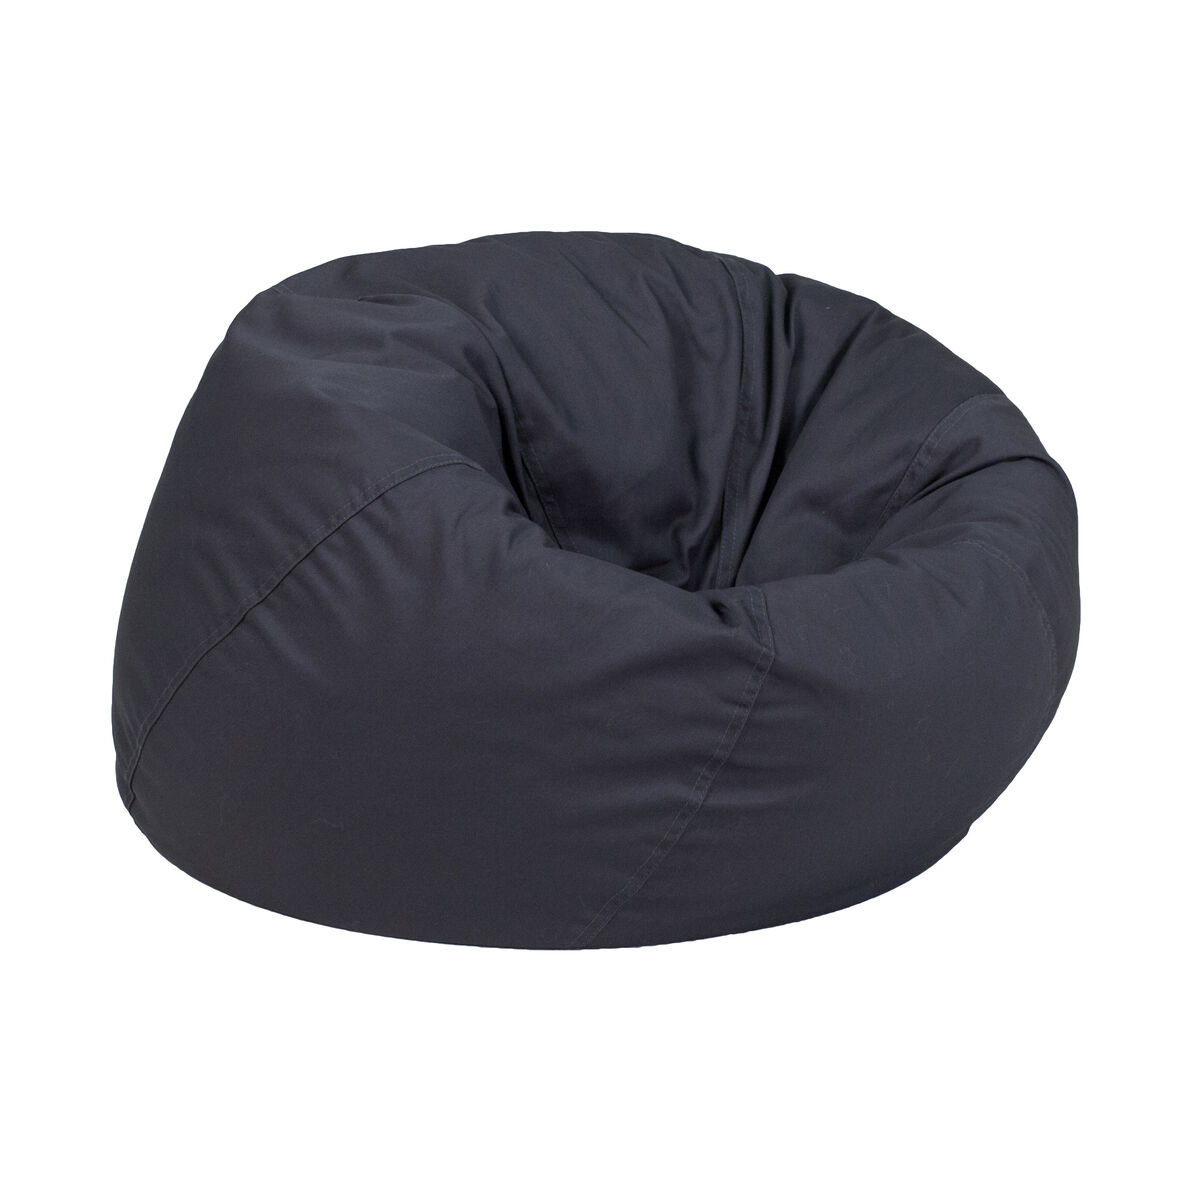 Our Small Solid Gray Kids Bean Bag Chair Is On Now